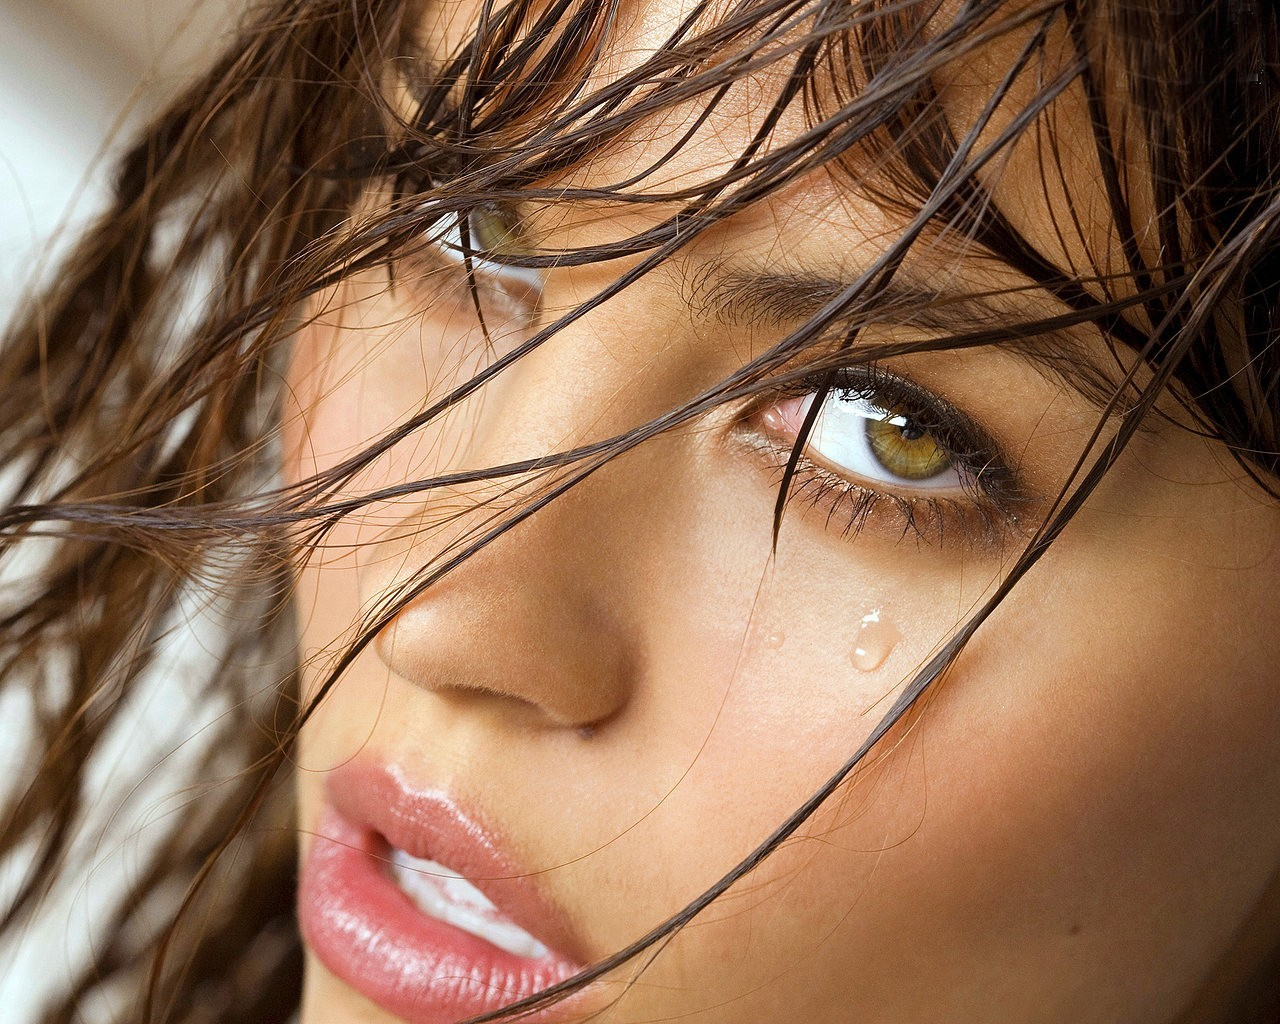 woman close-up faces green eyes brunettes HD Wallpaper